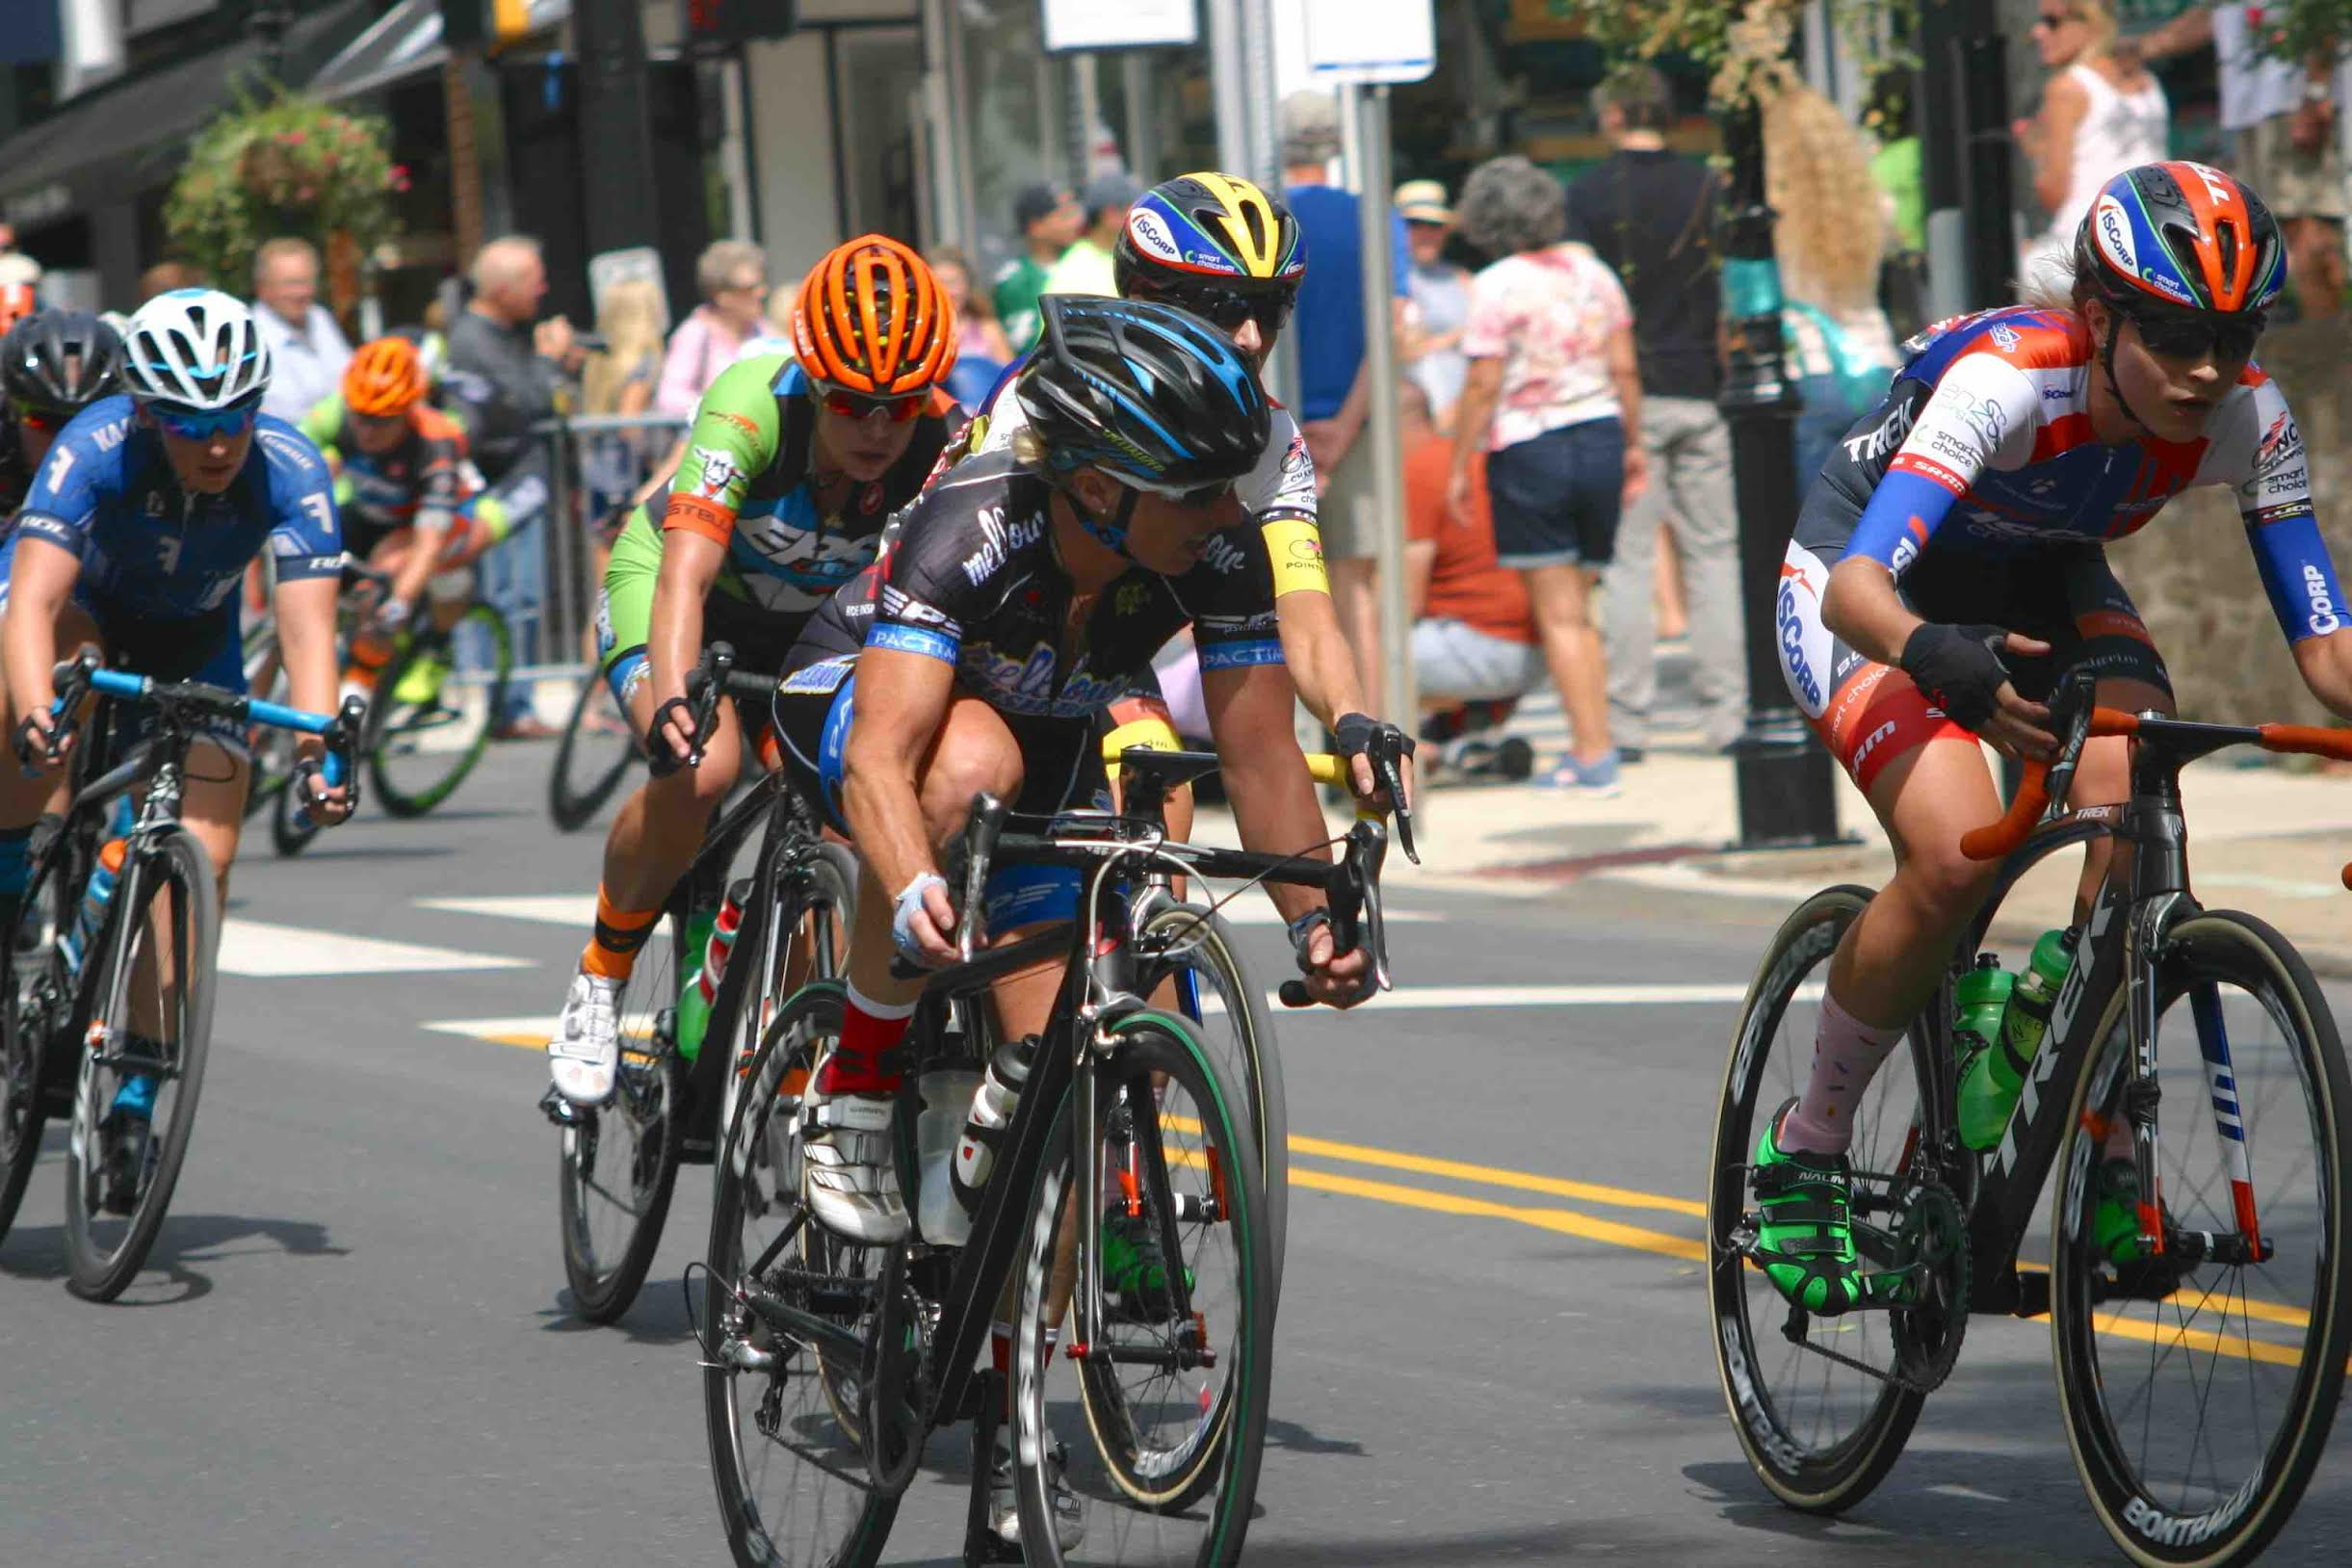 Laura Van Gilde, Mellow Mushroom Pizza Bakers p/b Van Dessel (center), takes a look to see who wants to help pull back the leaders. This is one of the fastest portions of the course. Photo courtesy Chuck Rudy.